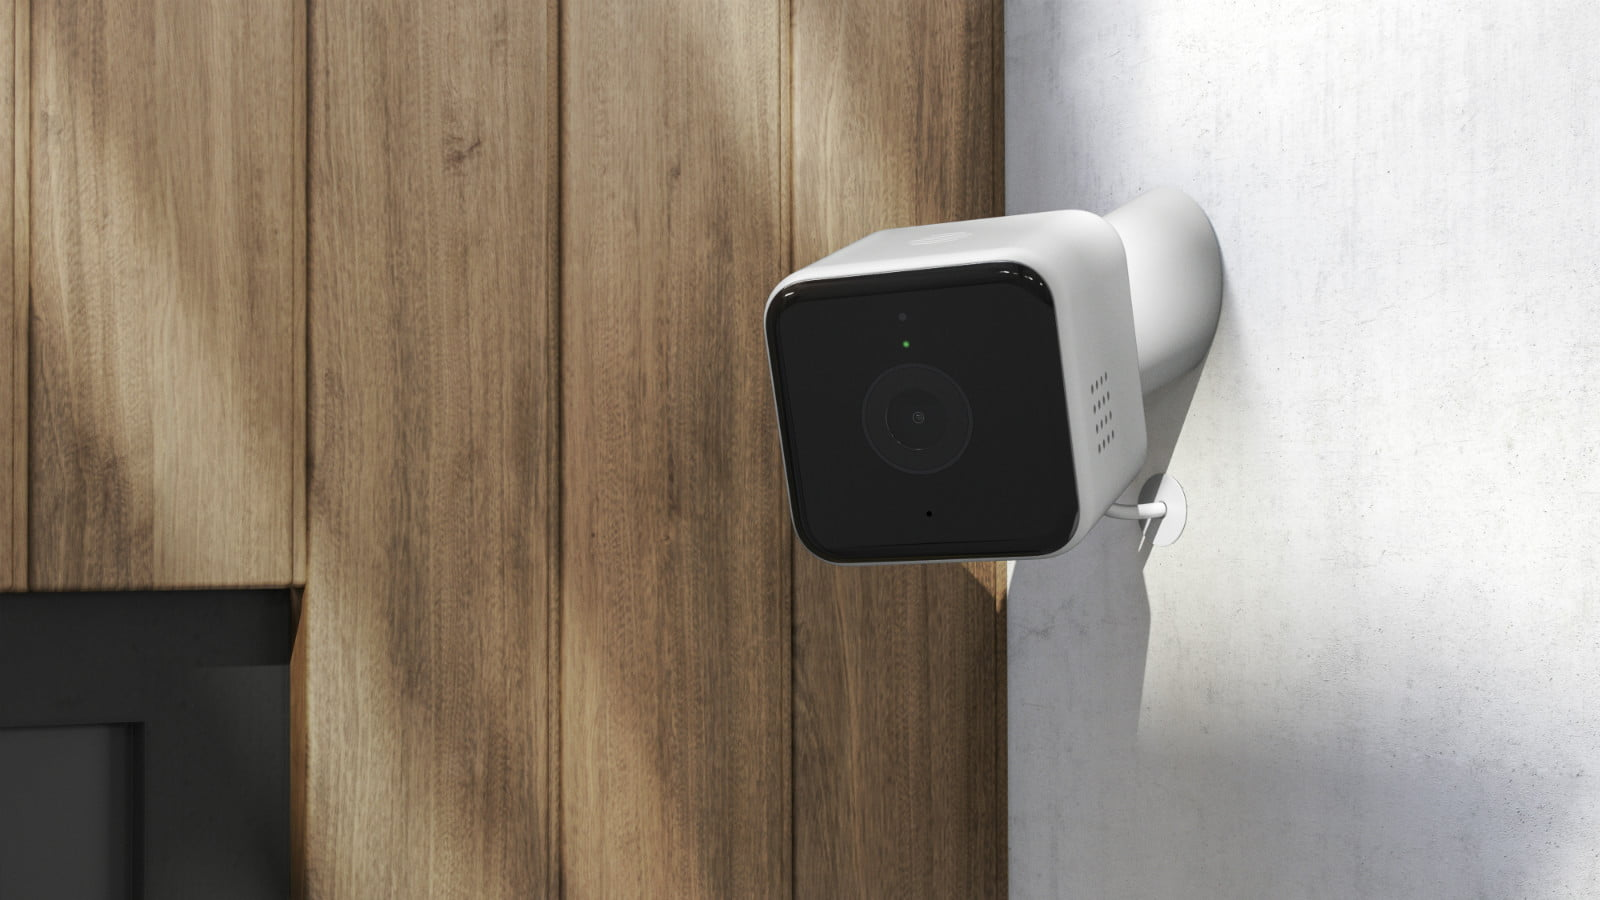 hive view outdoor smart security camera render  left angle insitu on white wall wood panelling copy